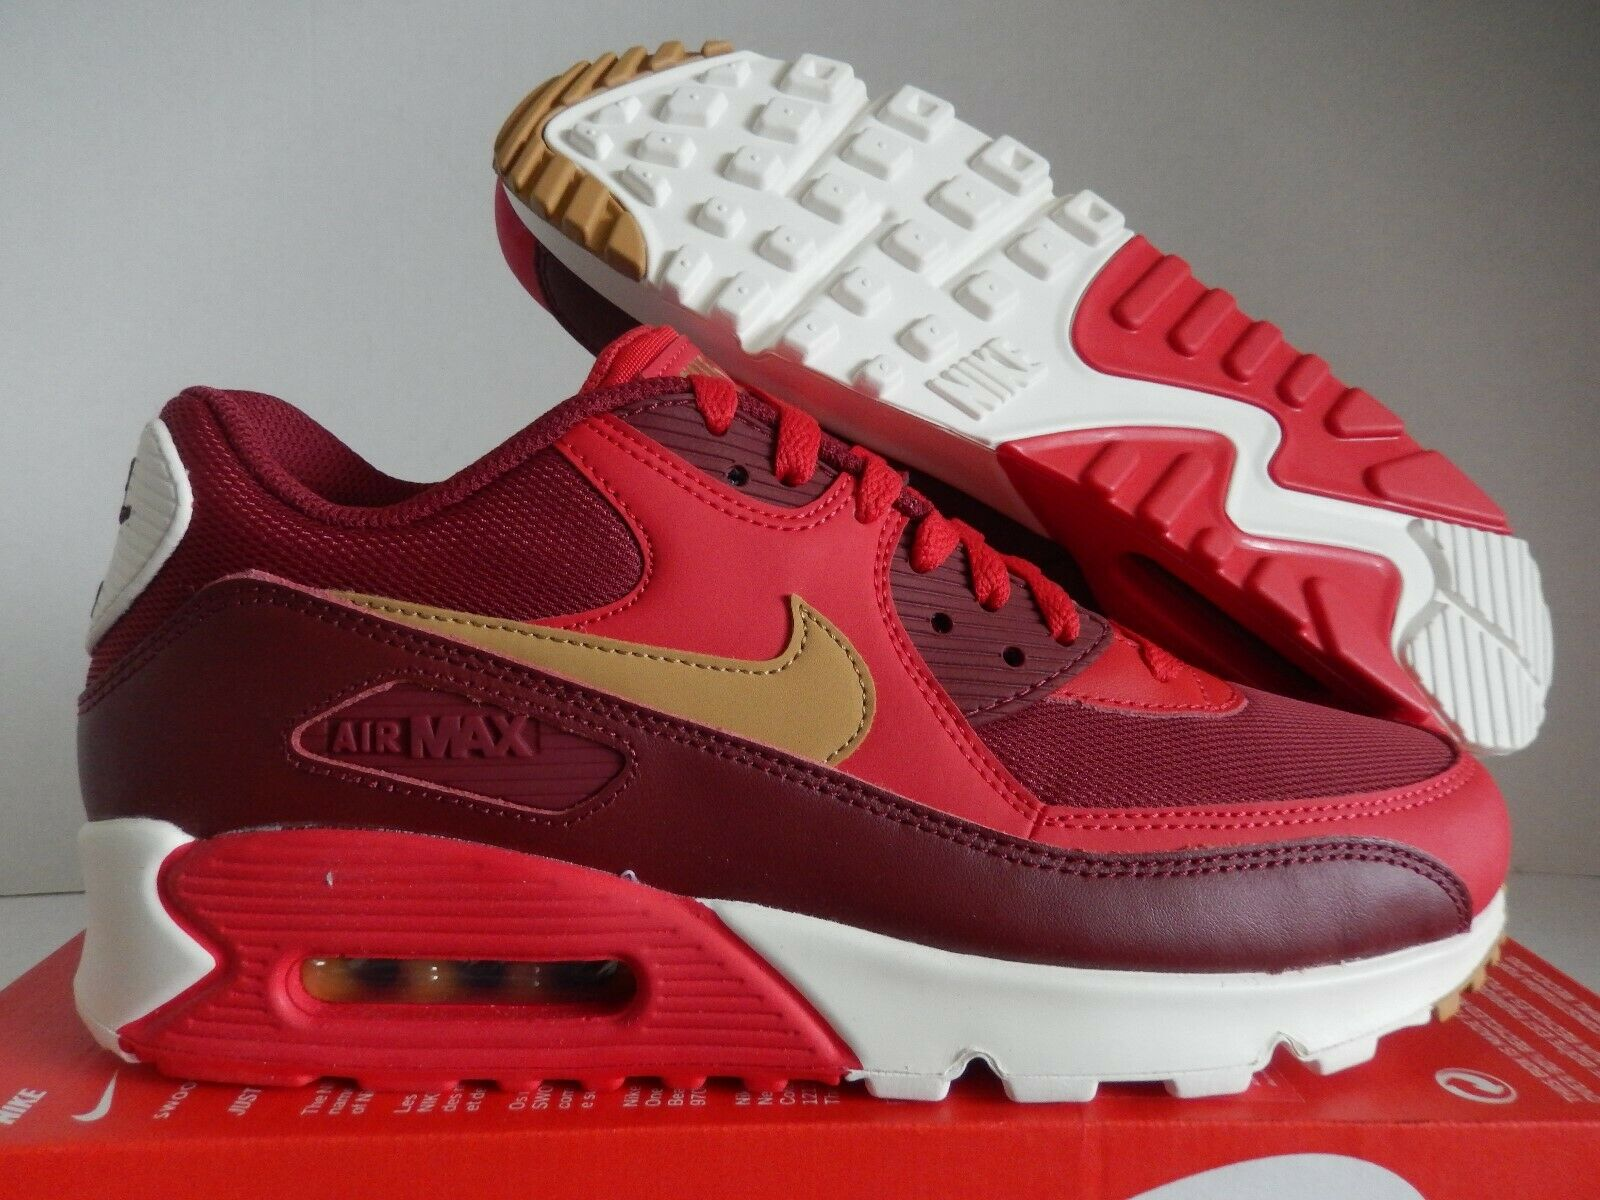 NIKE AIR MAX 90 ESSENTIAL GAME GAME GAME rosso-ELEMENTAL oro SZ 10 [537384-607] 38e729